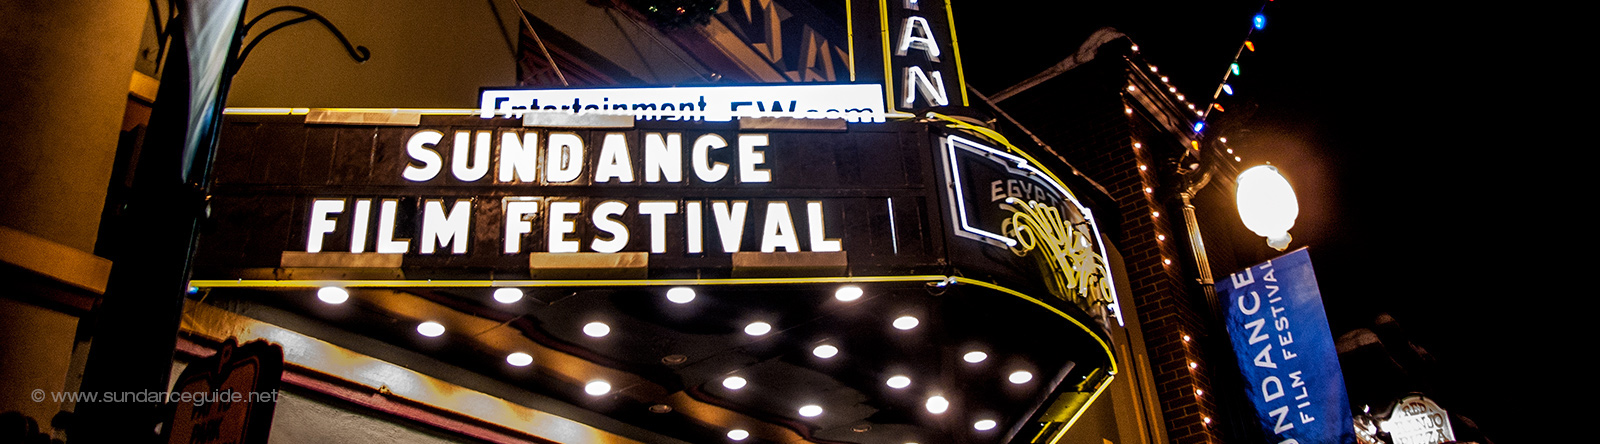 A picture of the Sundance Film Festival marquee at the Egyptian Theatre, Park City, Utah